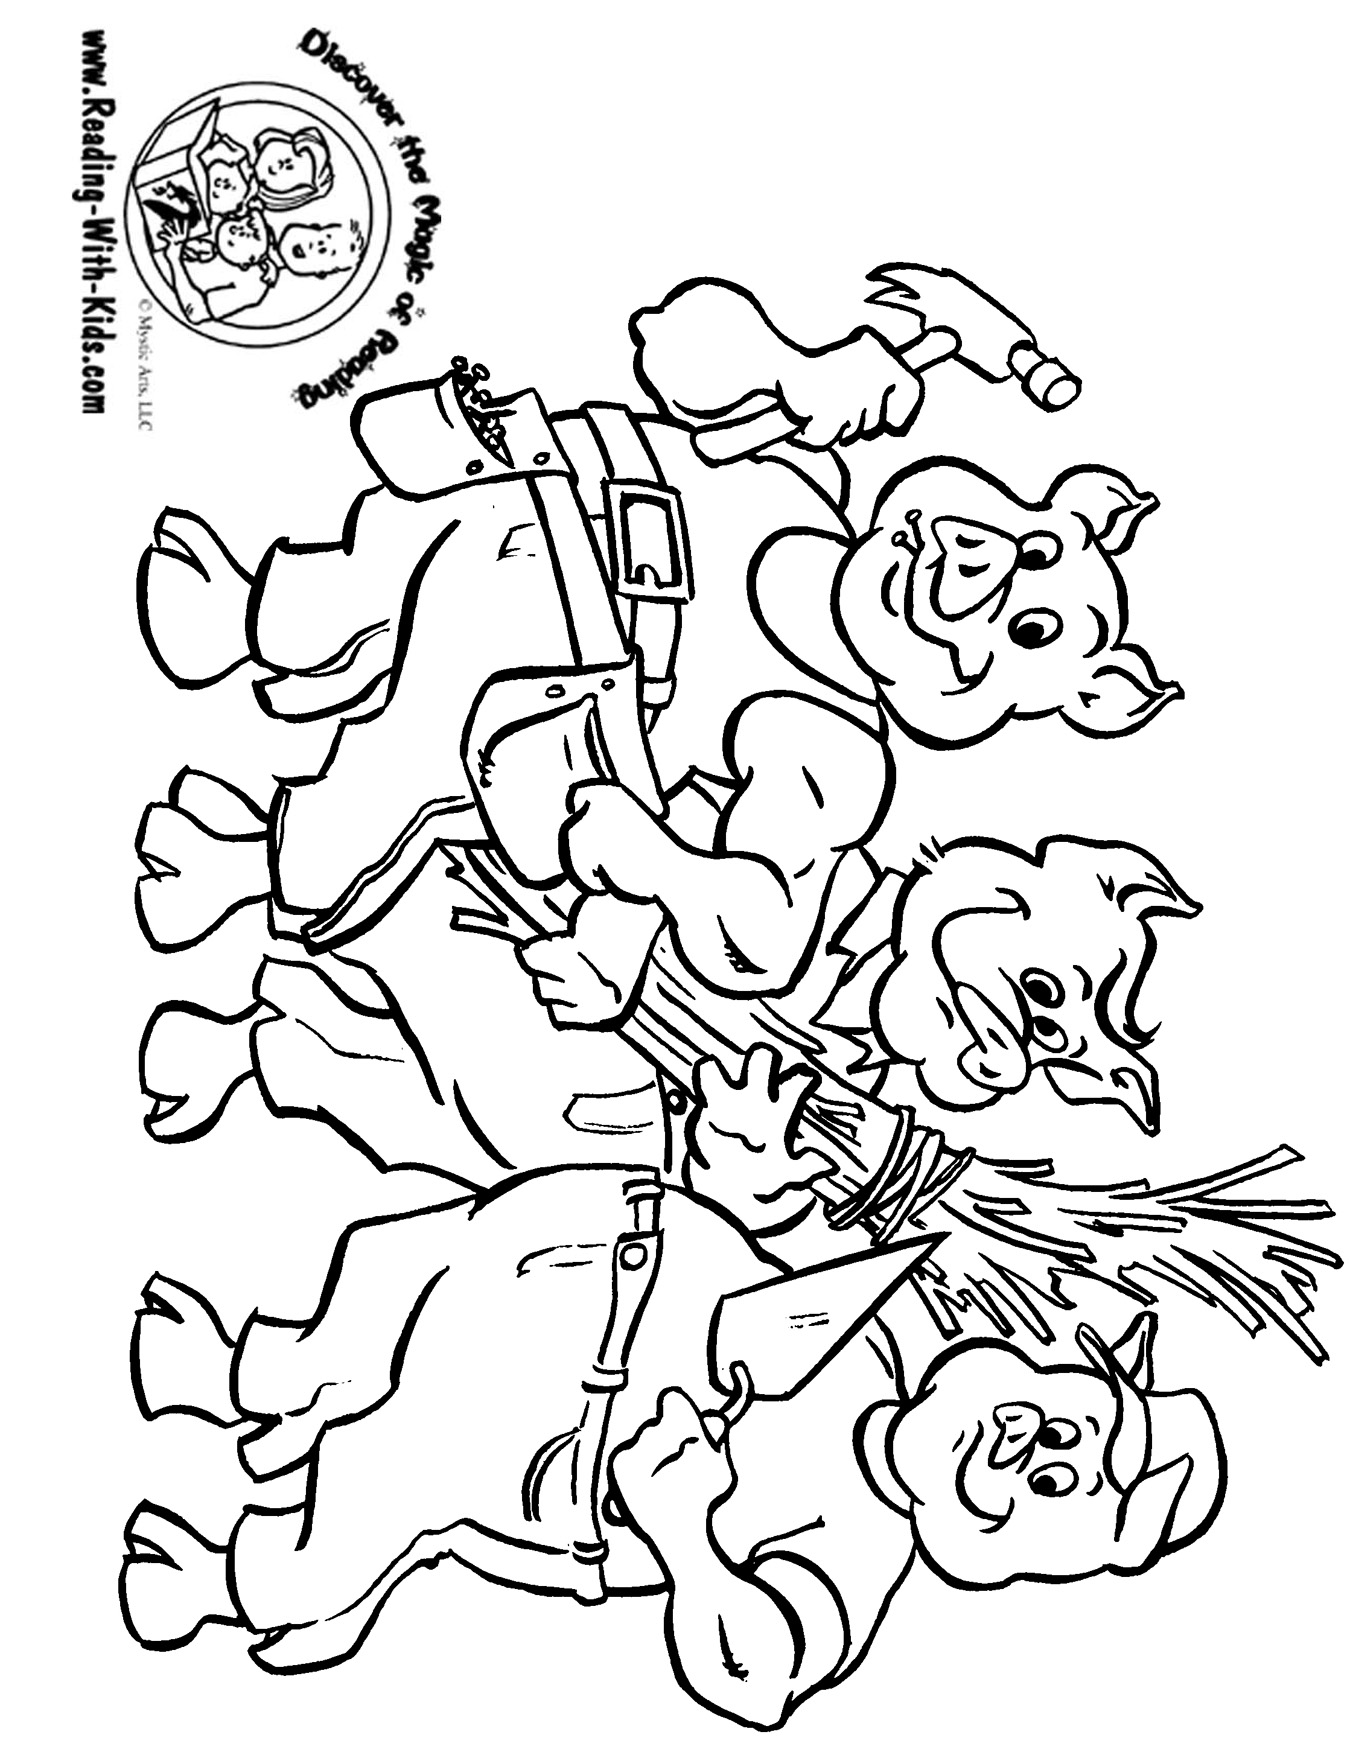 fairy tale coloring book pages - photo#9